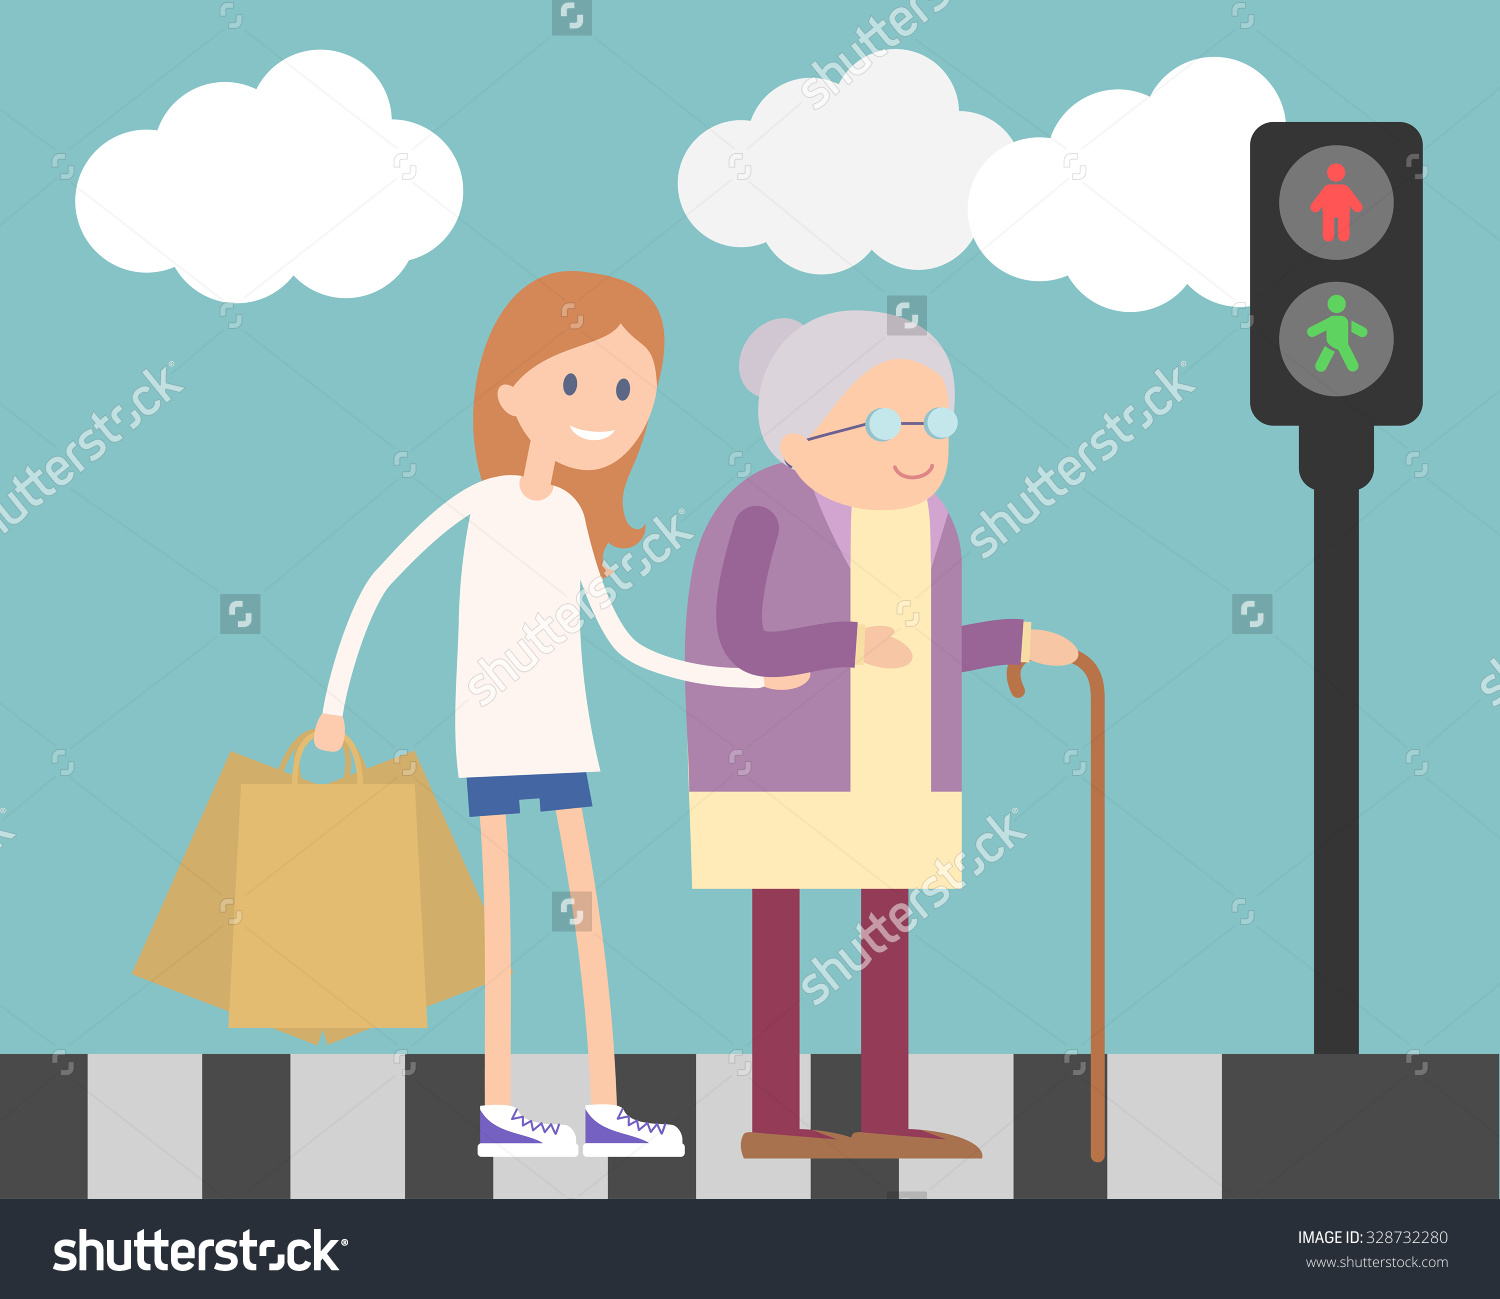 People showing kindness clipart vector Girl Helps Old Lady Crossing Road Stock Vector 328732280 ... vector